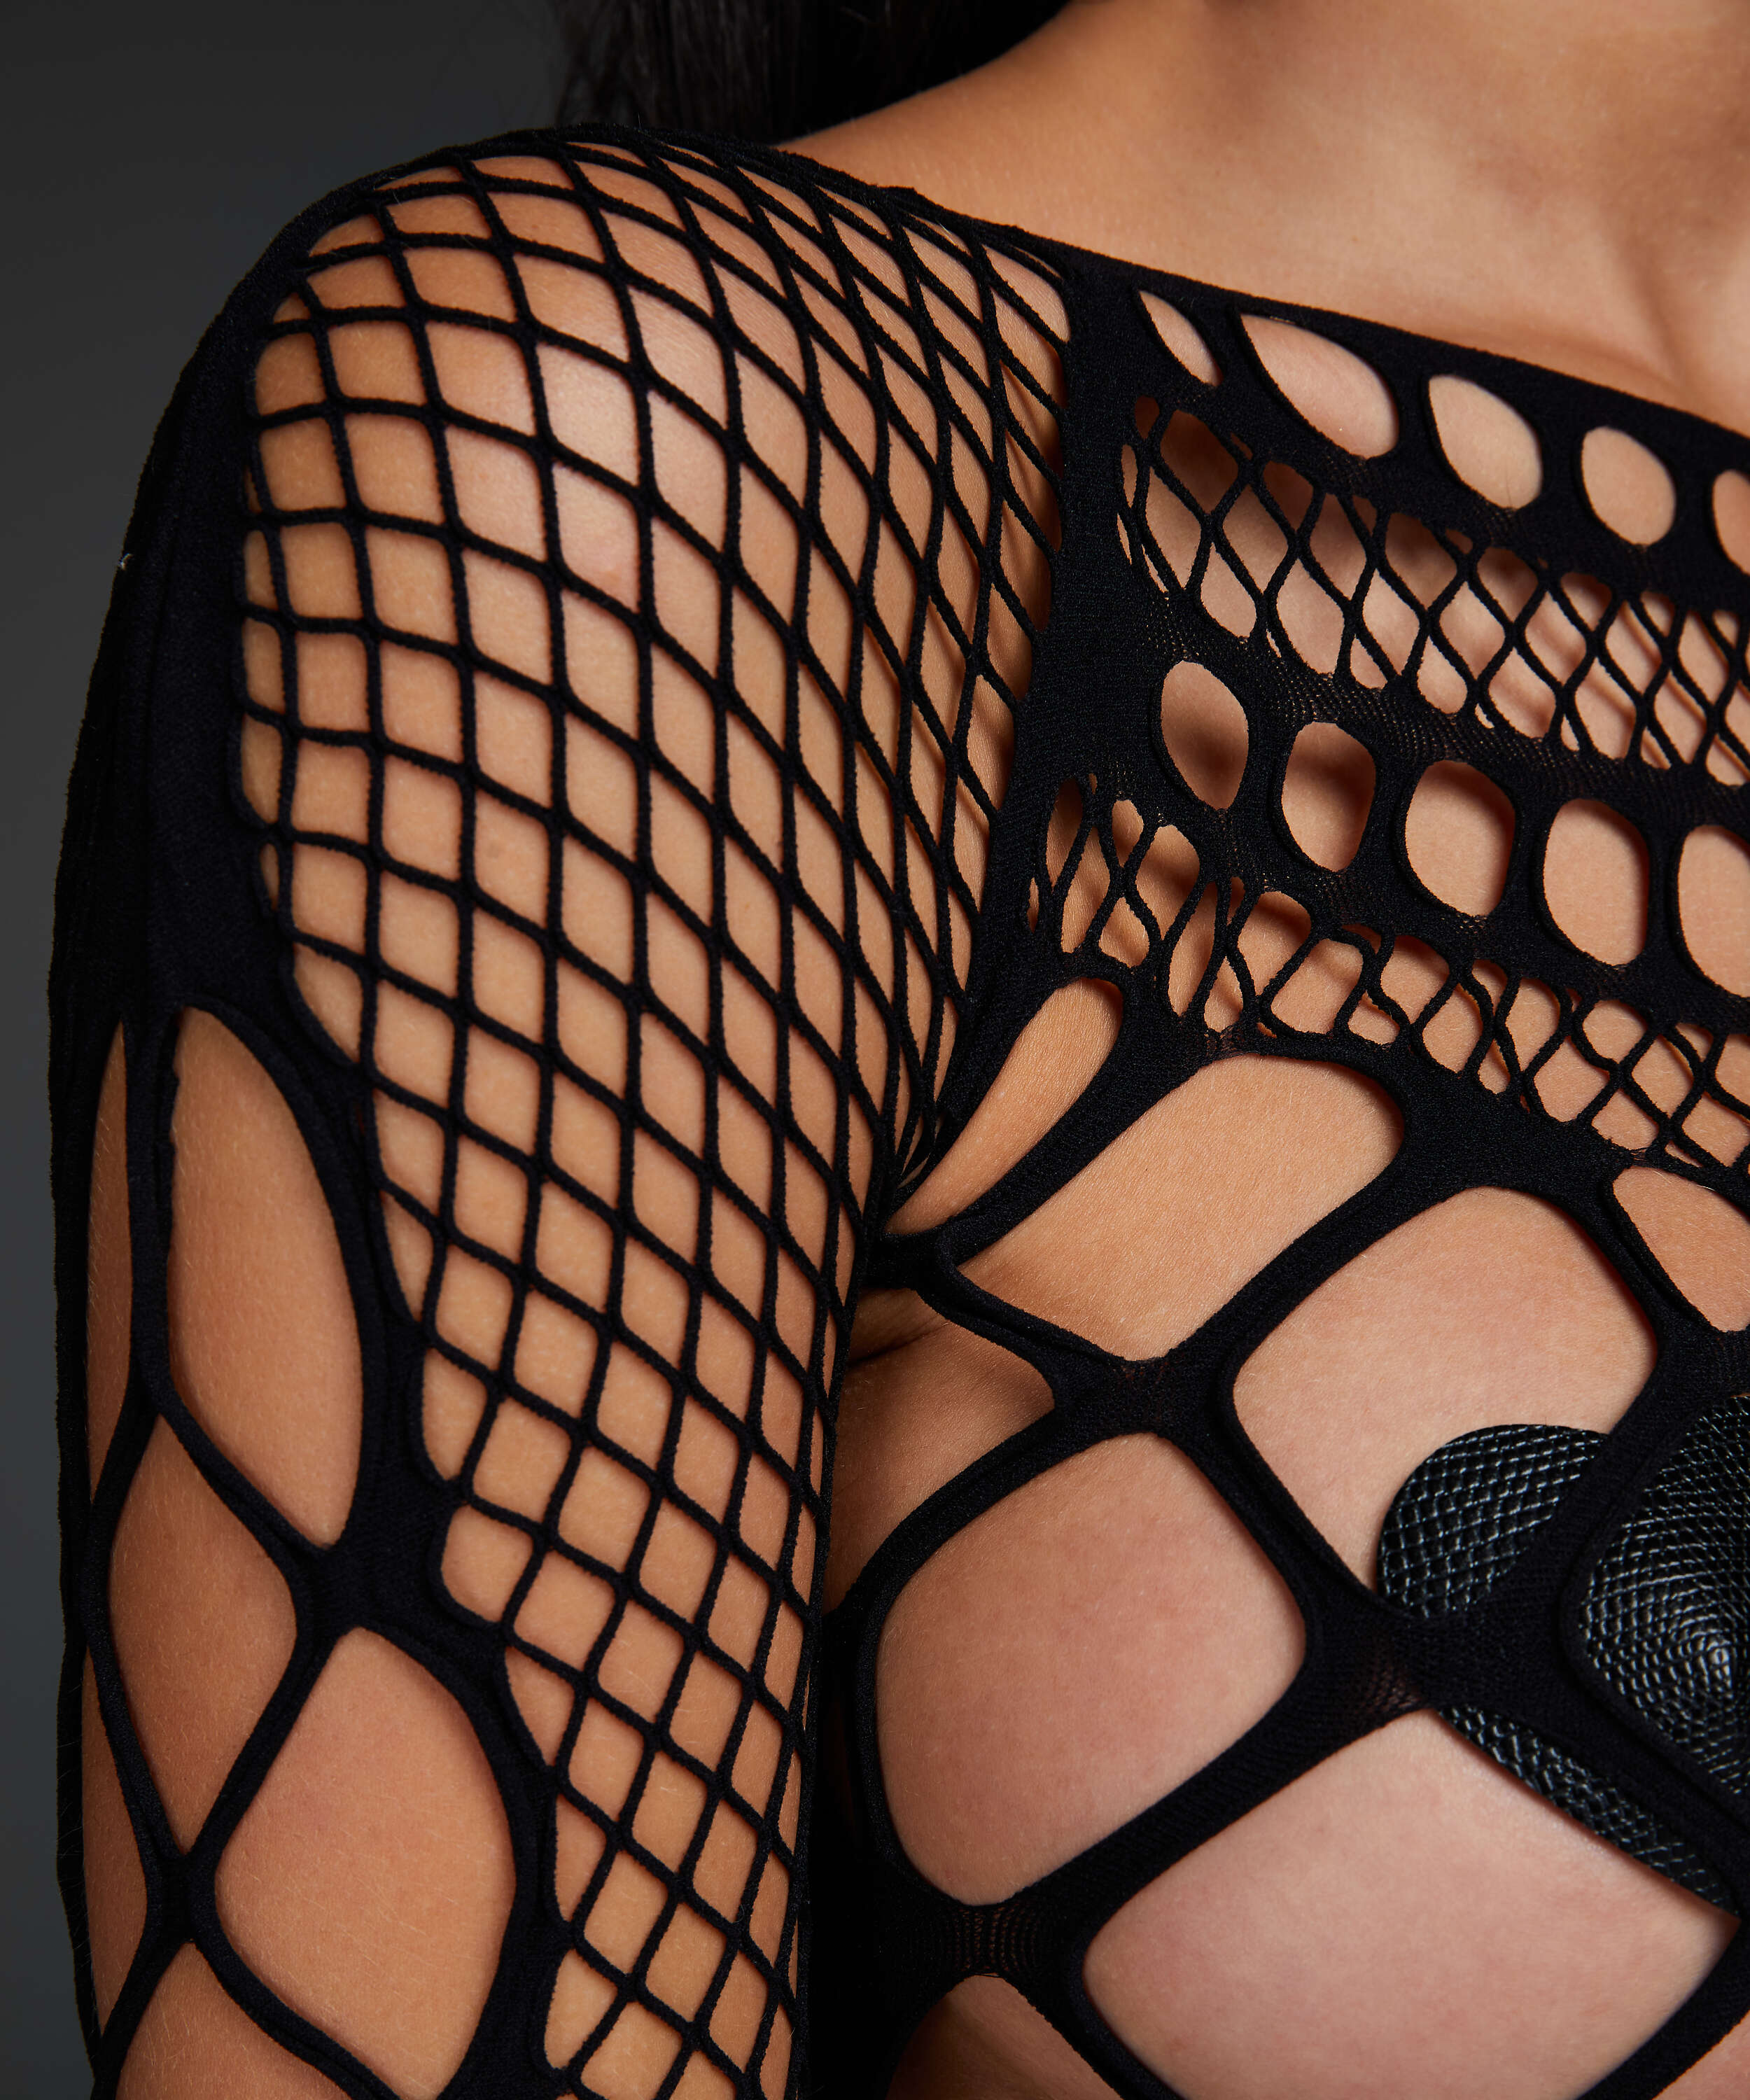 Private catsuit fishnet Chasity, sort, main